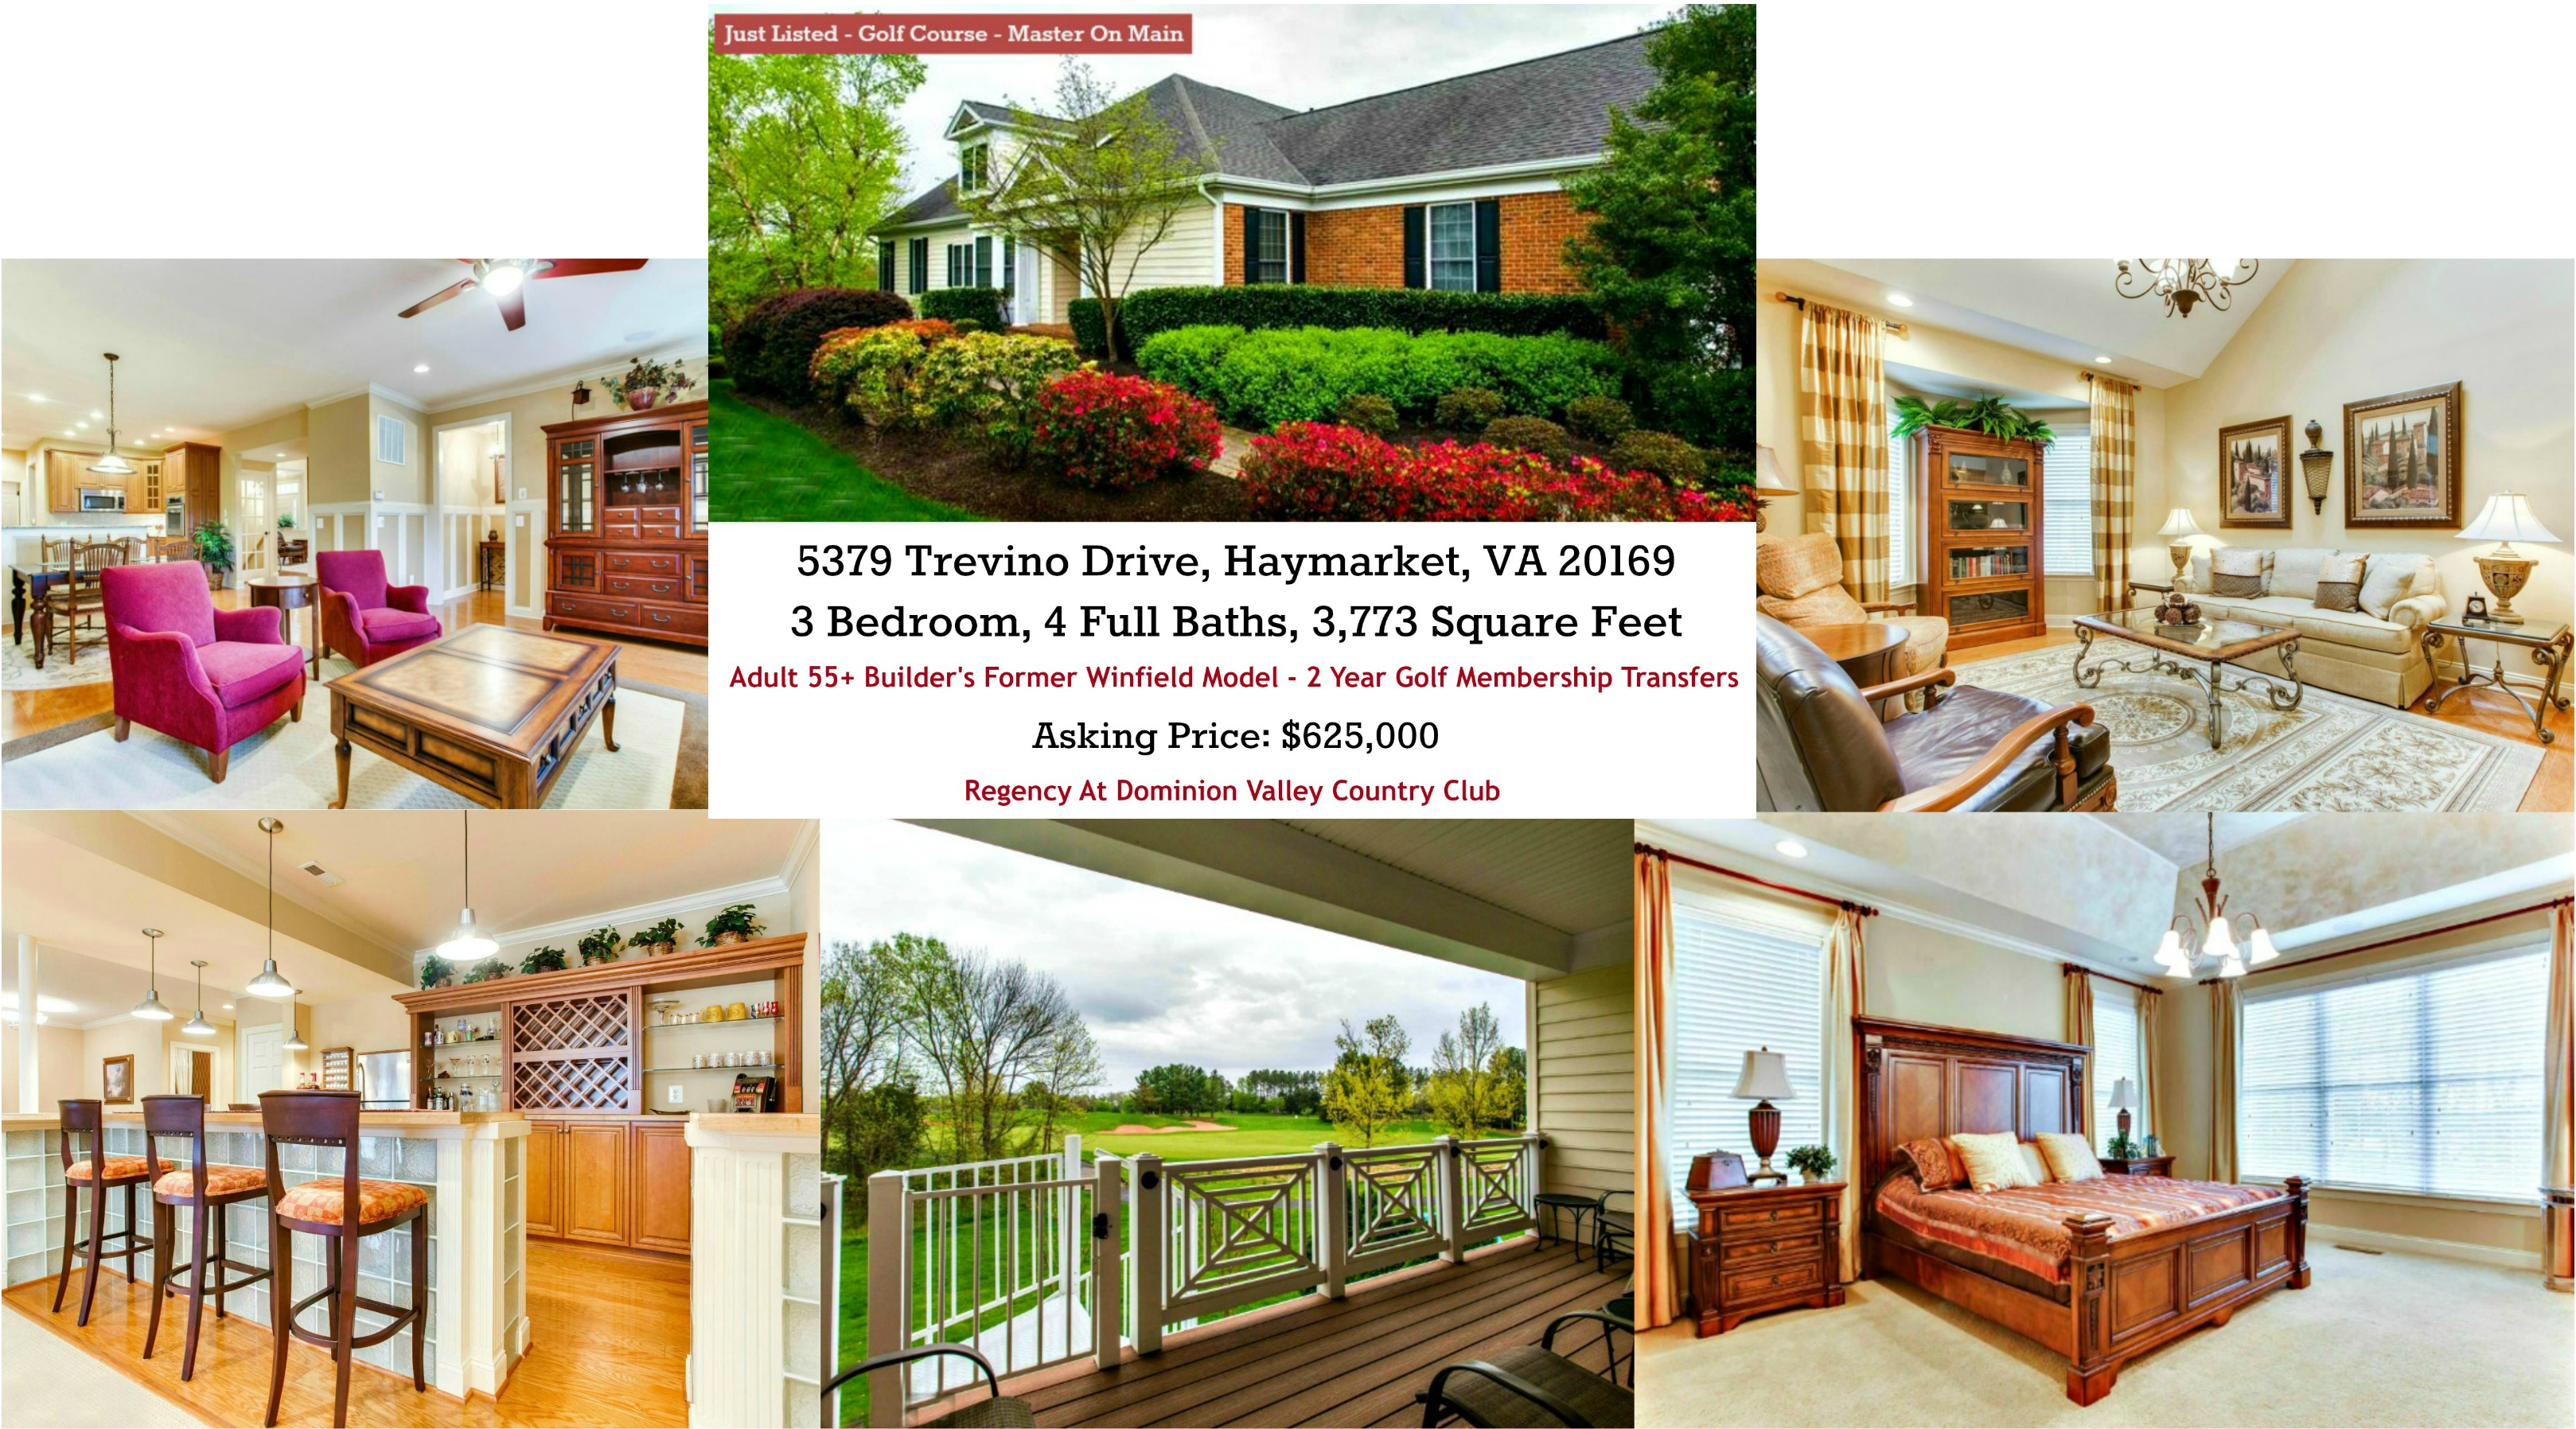 Regency at Dominion Valley Country Club For Sale 55+ Community in Haymarket, VA